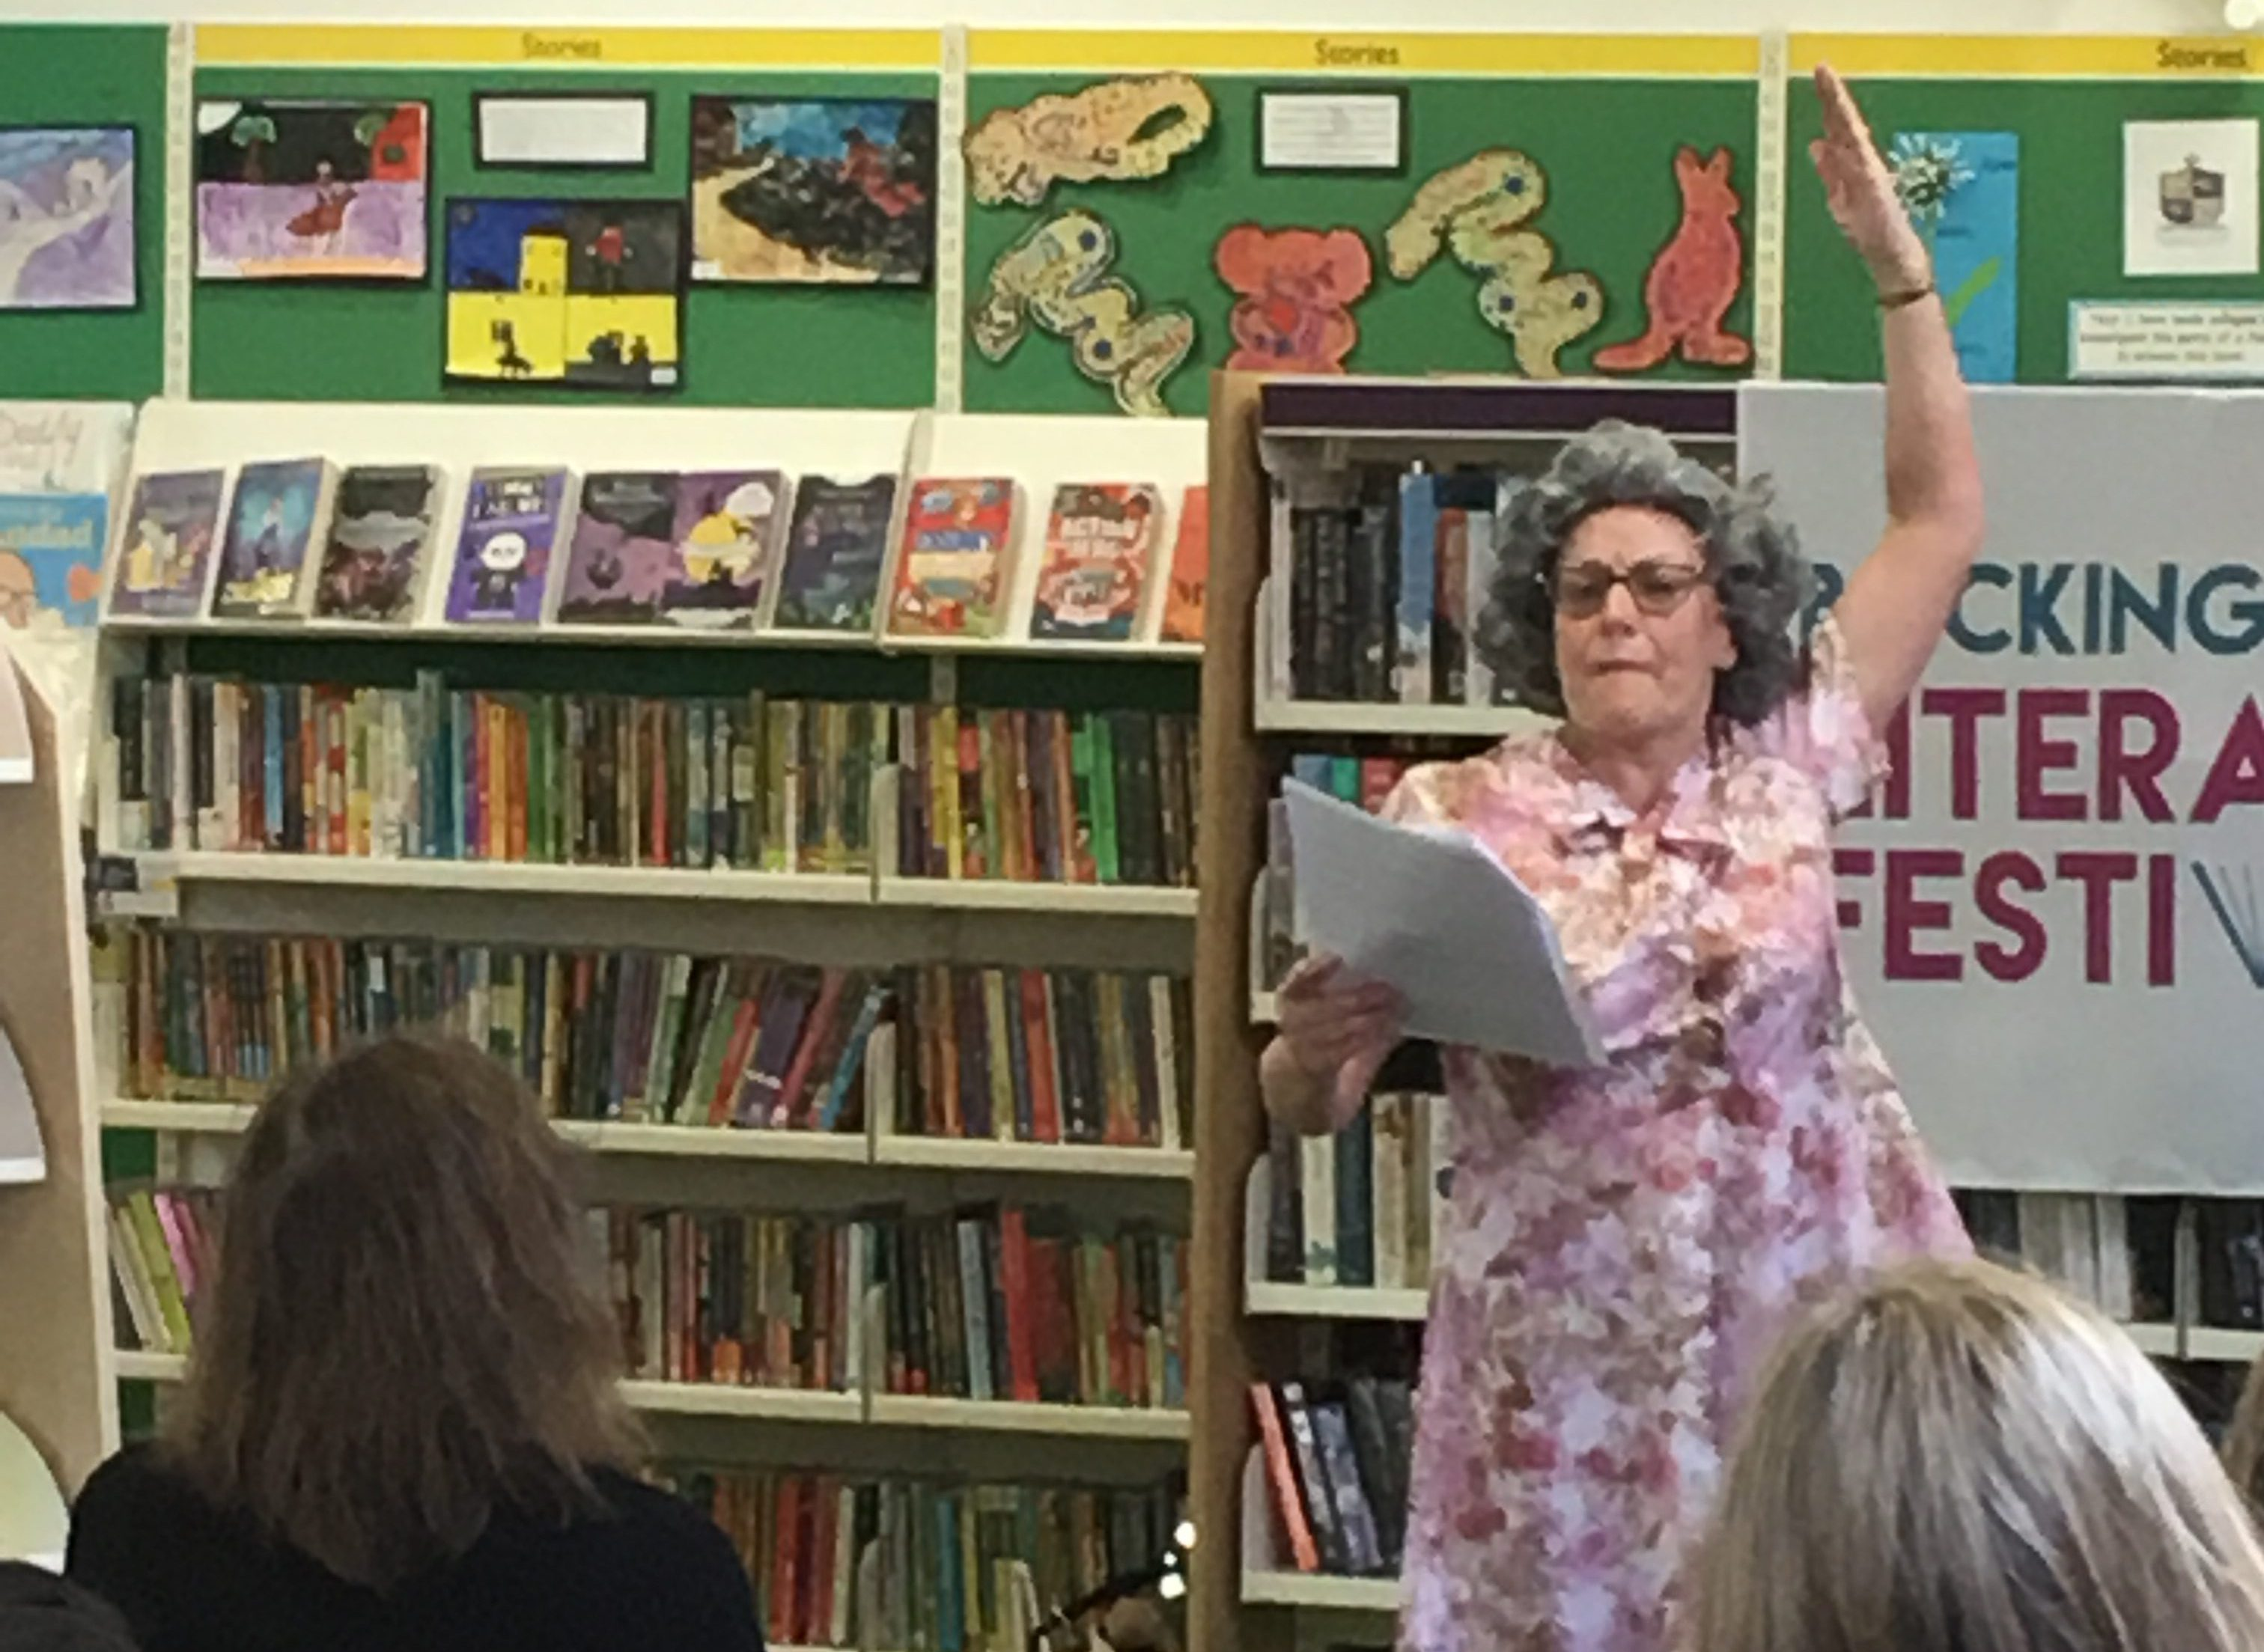 Performing at the library